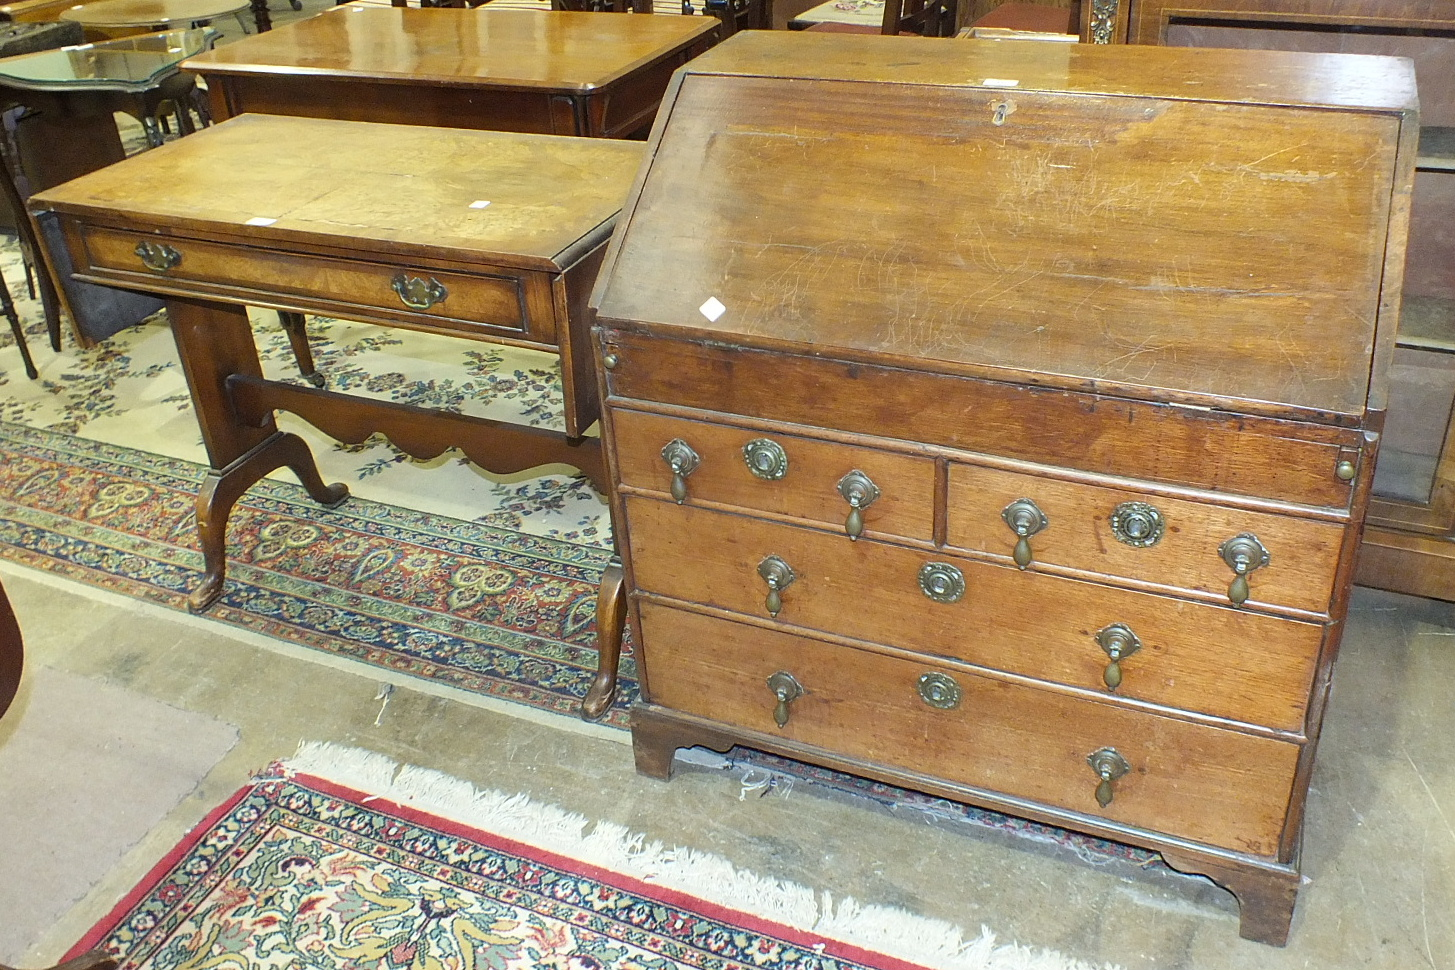 Lot 15 - A 19th century mahogany bureau, the rectangular top above a fall front revealing pigeon holes,